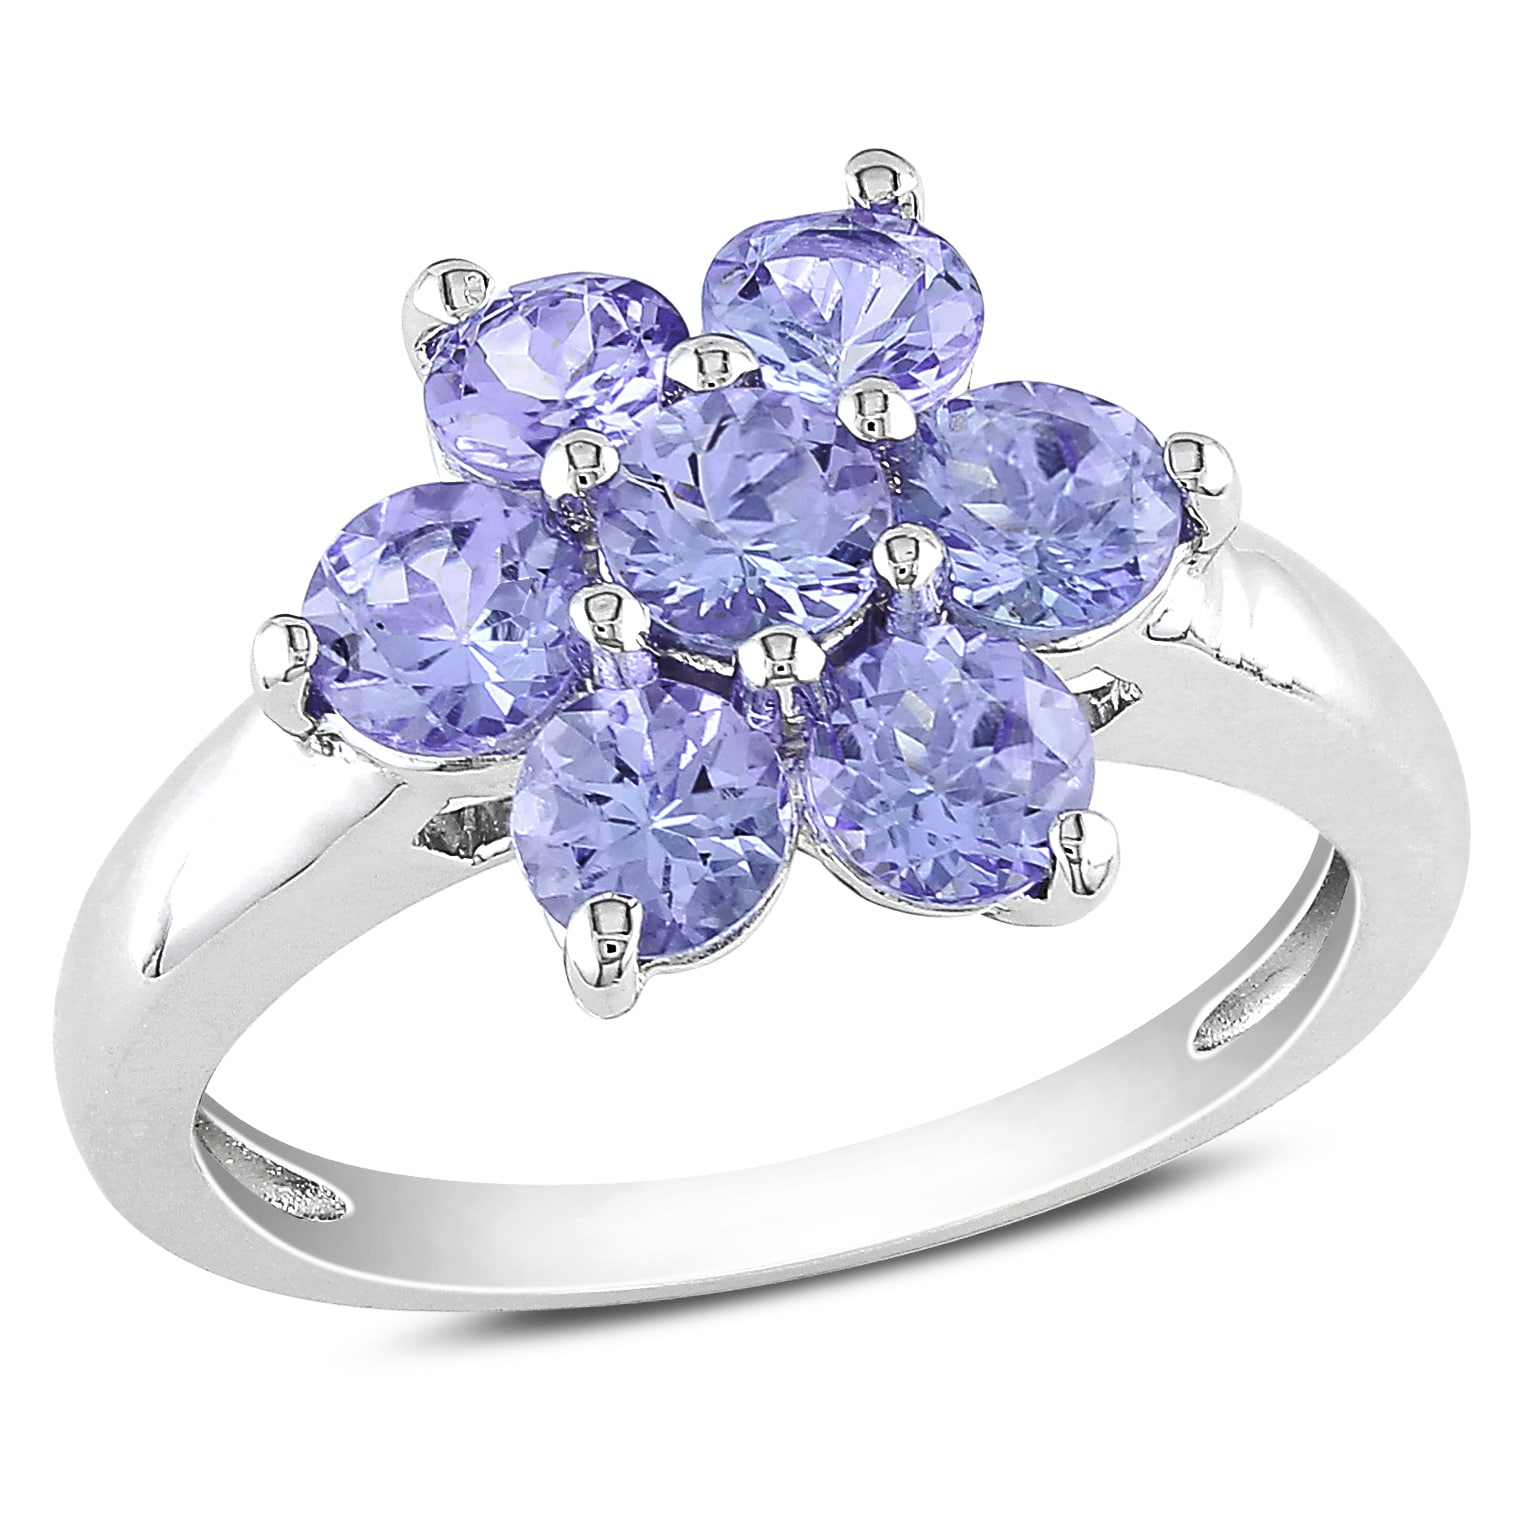 Miadora Sterling Silver Round Tanzanite Flower Ring  Free Shipping Today   Overstock  14645674